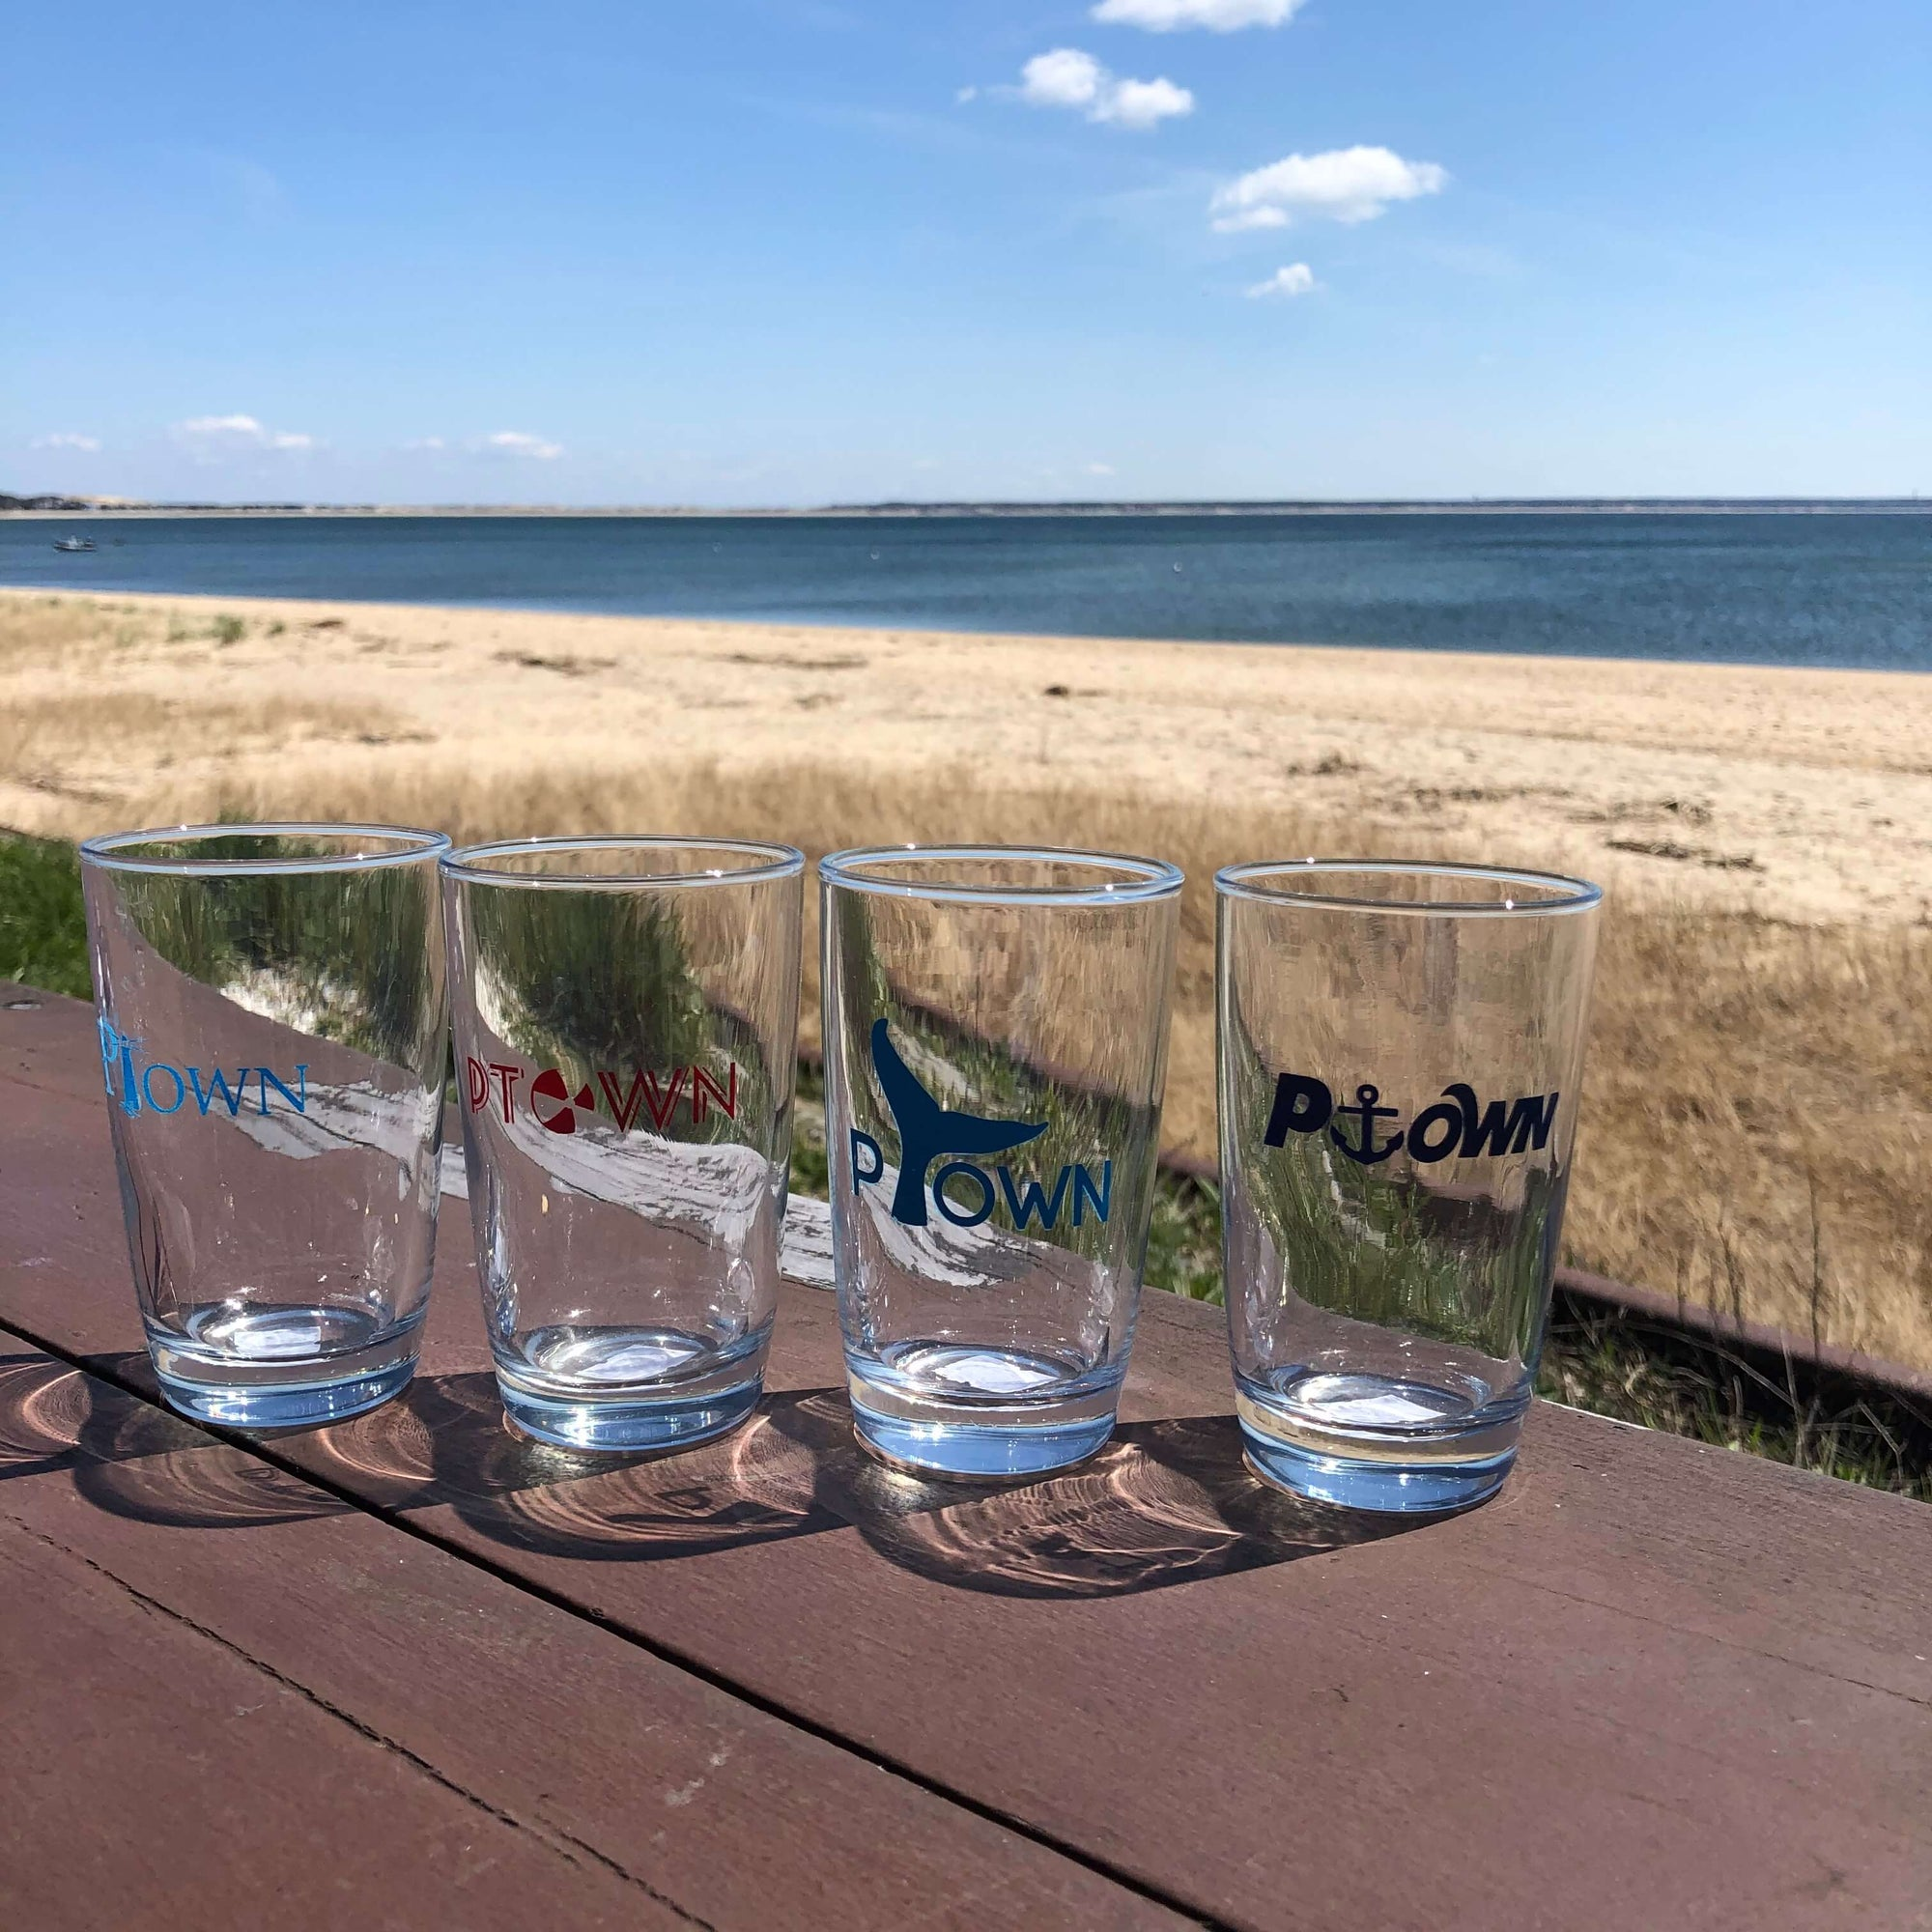 PTOWN JUICE GLASSES